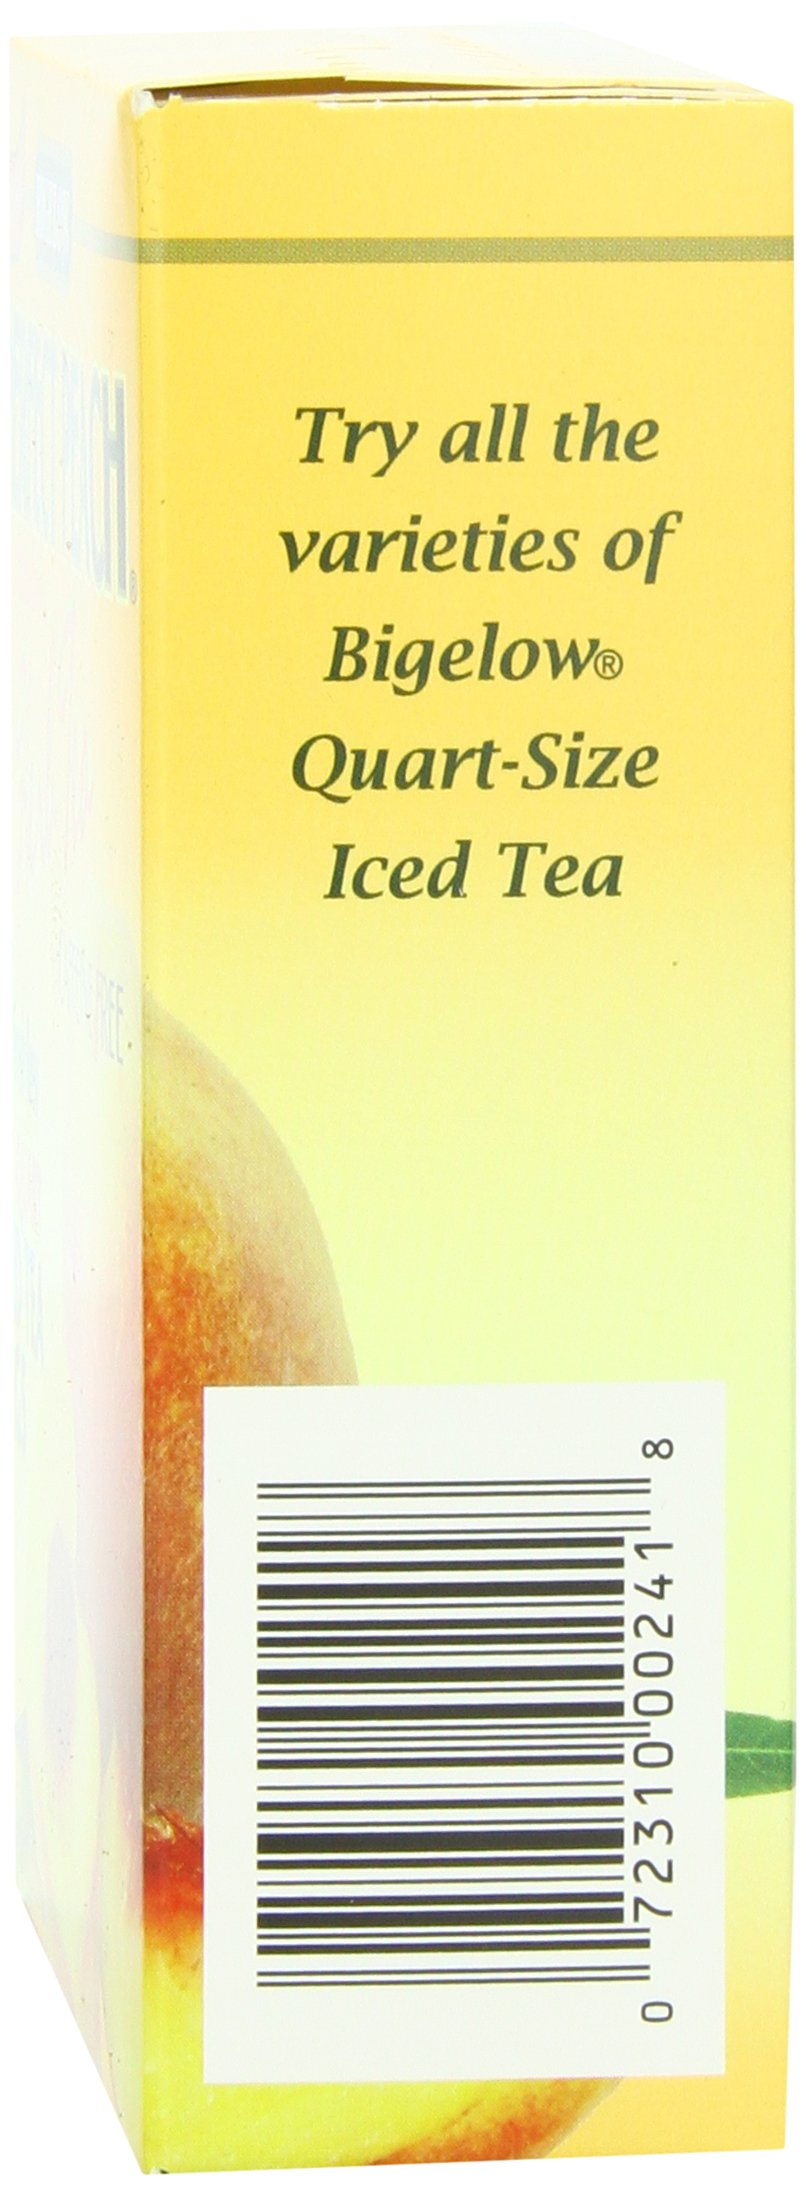 Bigelow Perfect Peach Iced Tea 8-Count Boxes (Pack of 6), 48 Tea Bags Total.  Black Tea Bags for Brewing Iced Tea, Each Bag Brews One Quart of Delicious Iced Tea